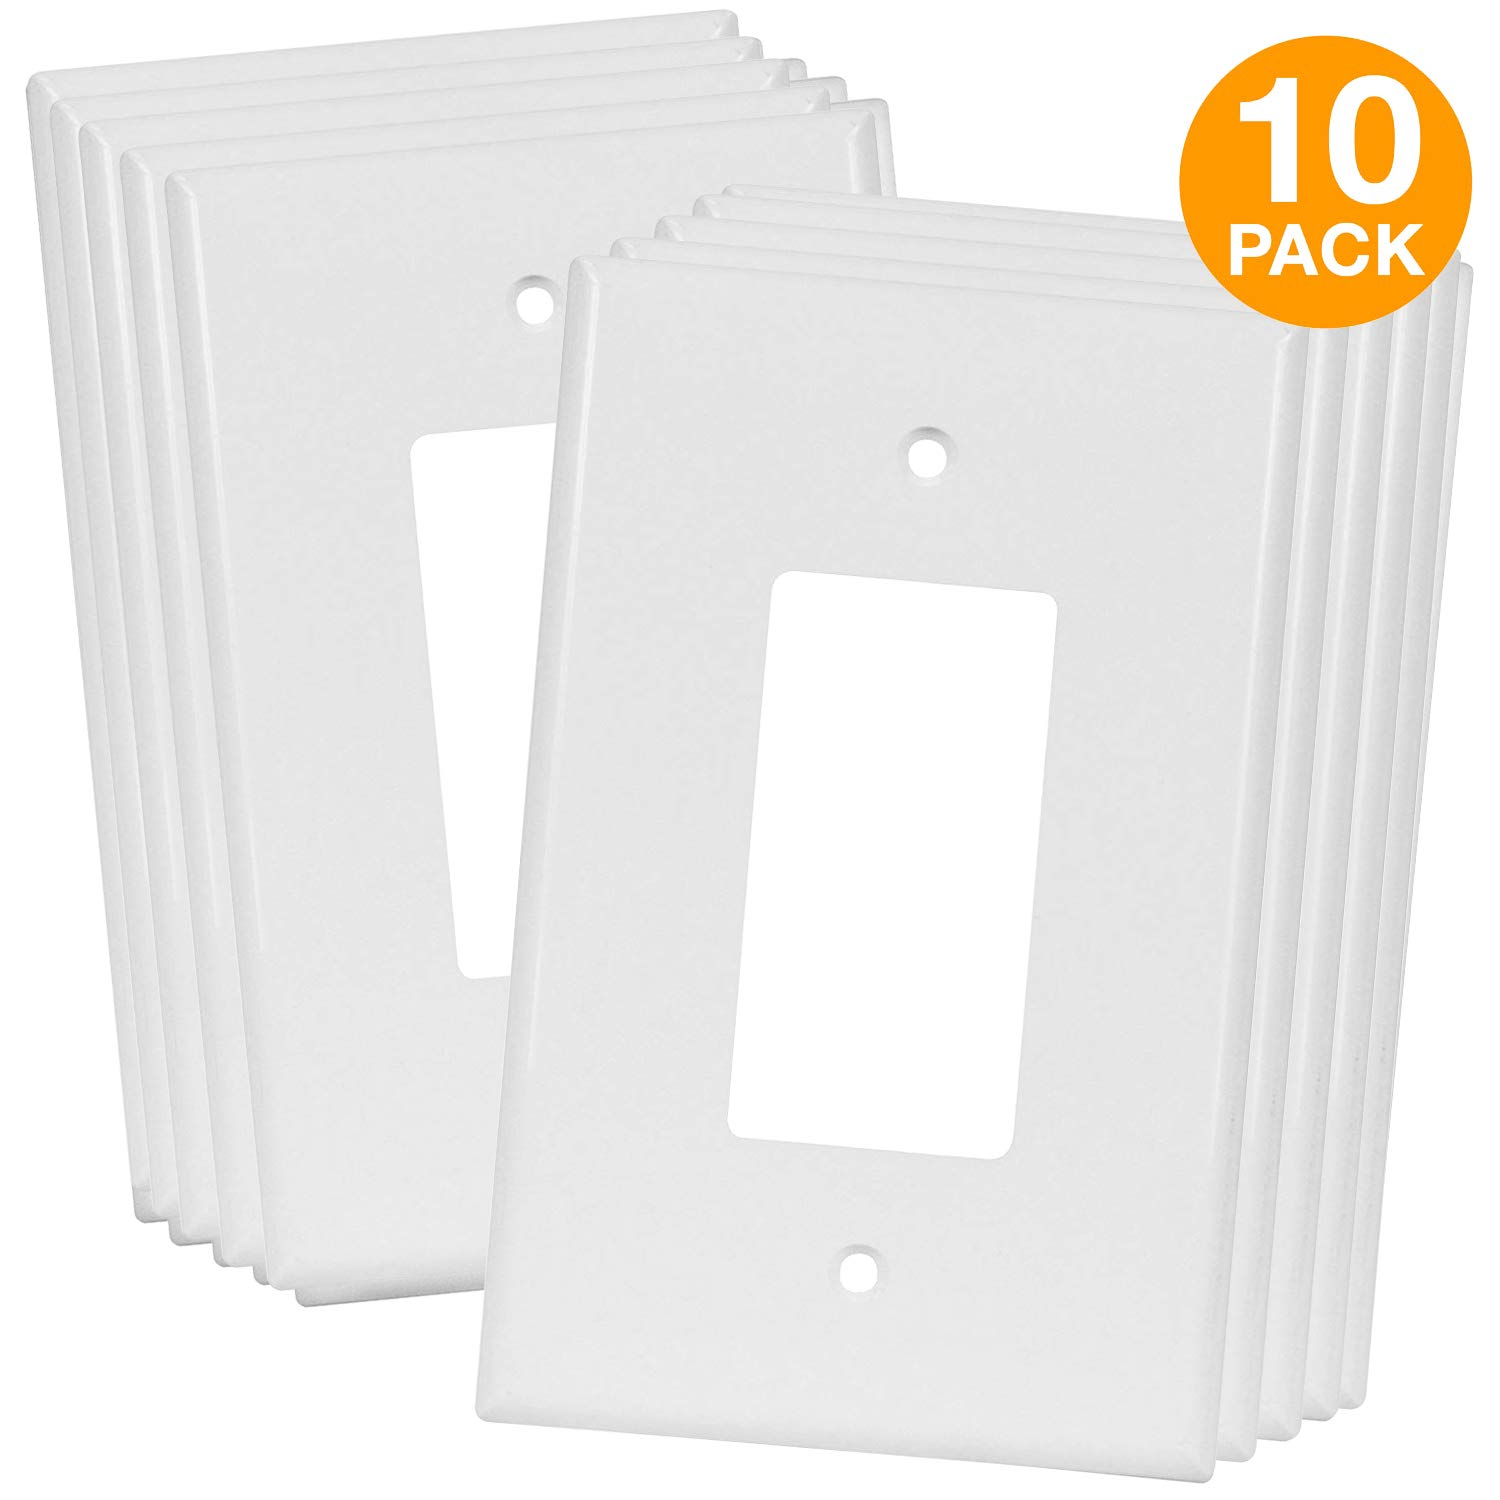 ENERLITES Decorator Light Switch or Receptacle Outlet Wall Plate, Over-Size 1-Gang 5.5'' x 3.5'', Polycarbonate Thermoplastic, White (10 Pack) by ENERLITES